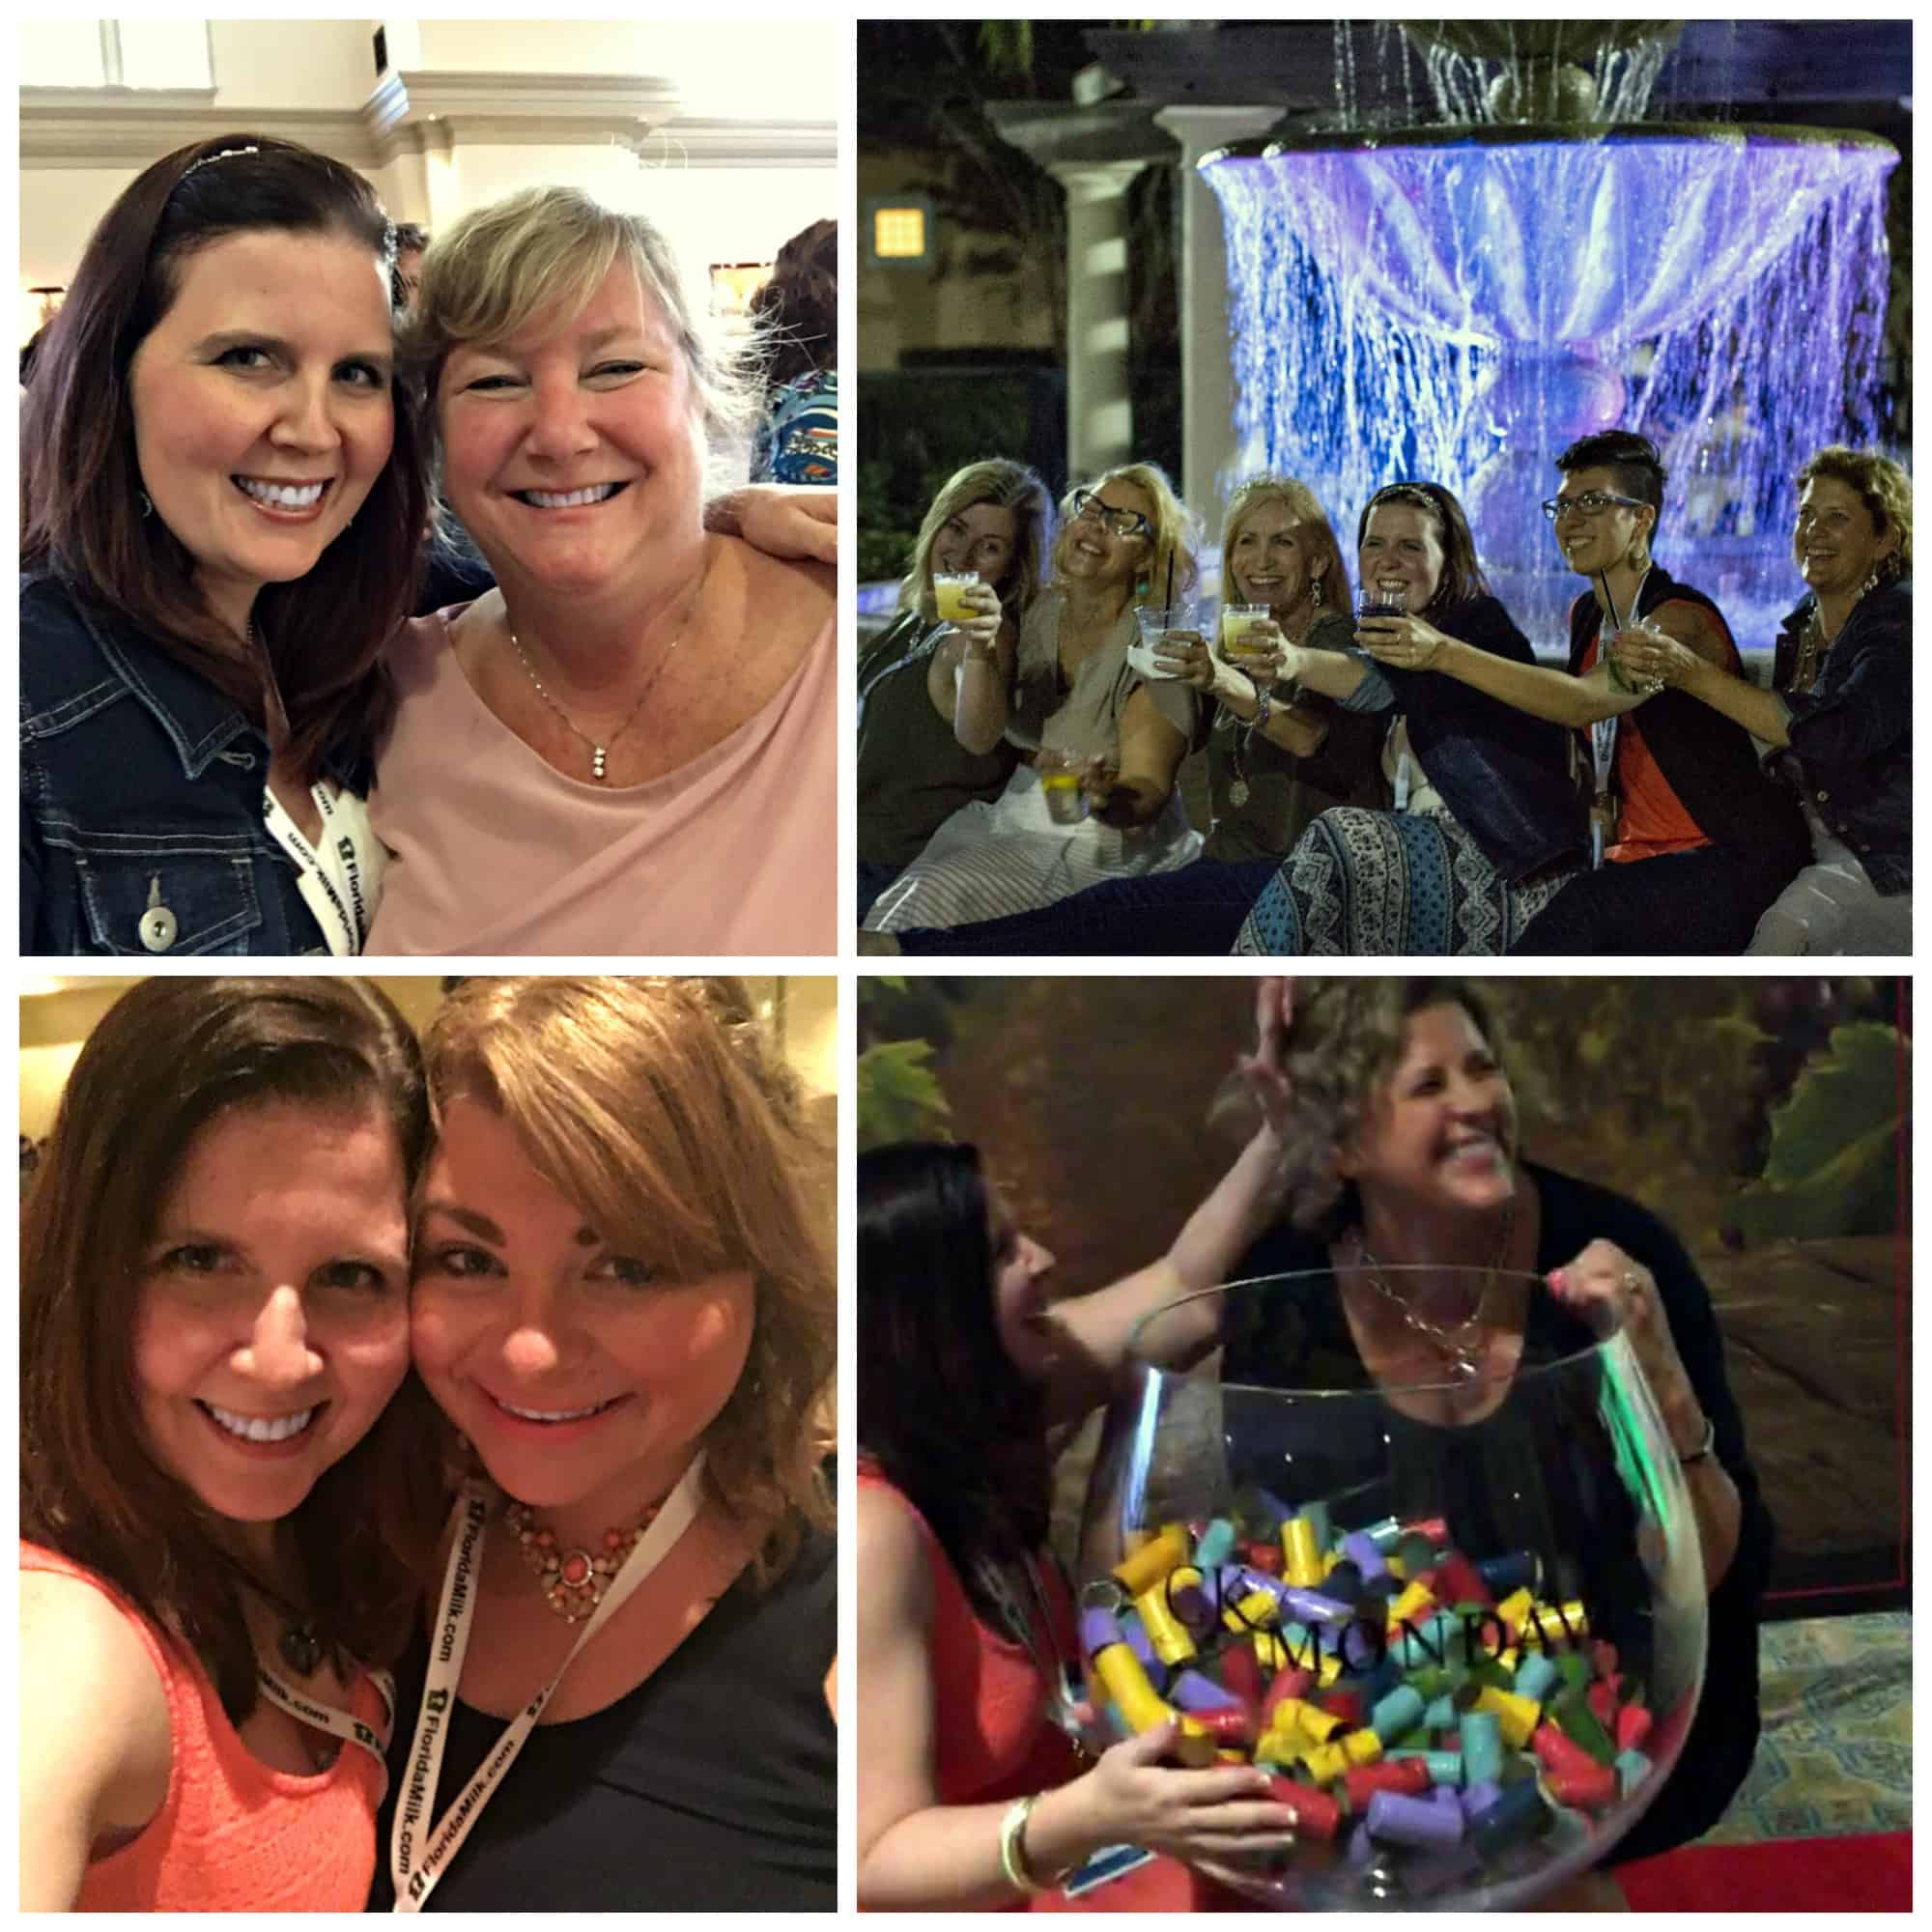 How to Succeed at #FWCon Without Really Trying| Recap - #FWCon Laugh